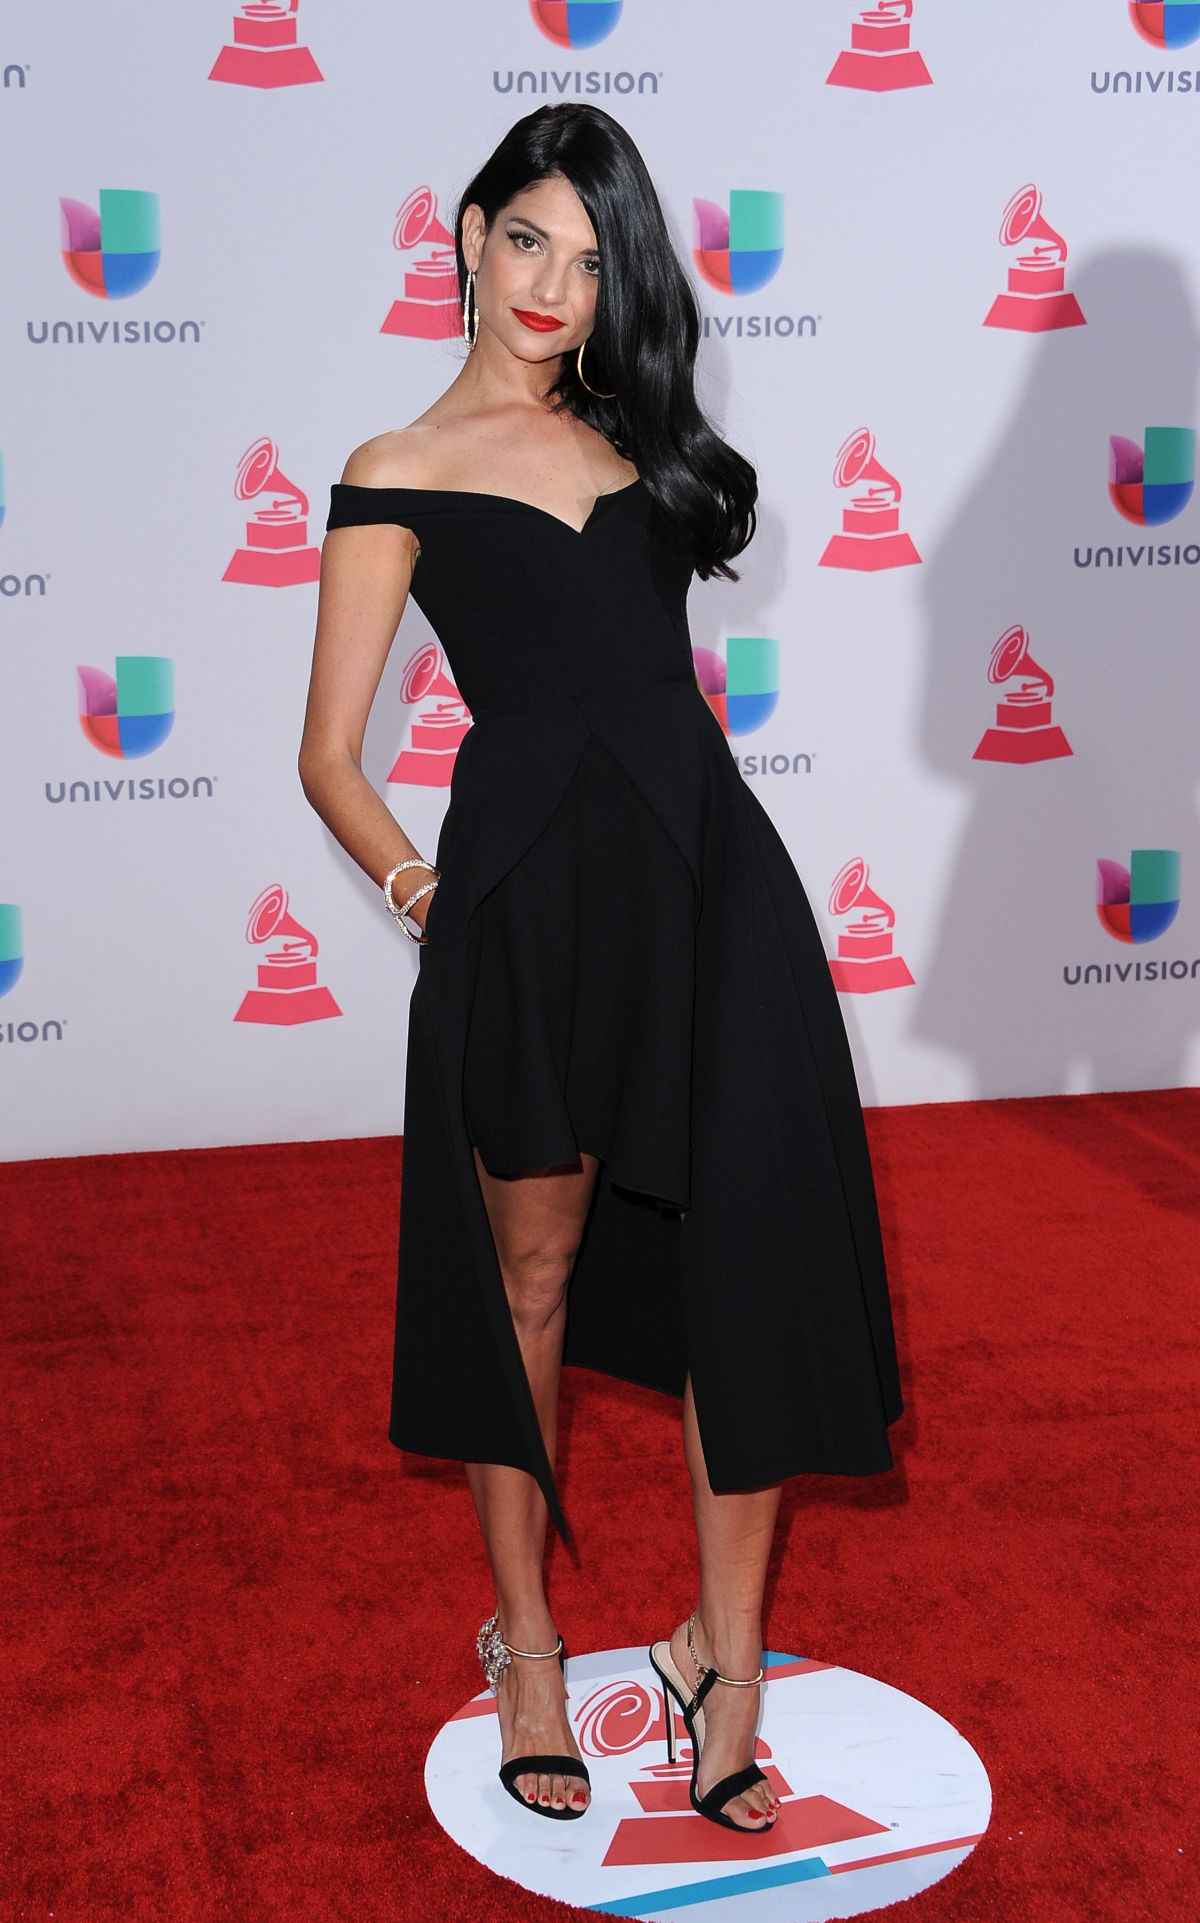 NATALIA JIMENEZ at 2015 Latin Grammy Awards in Las Vegas 11/18/2015